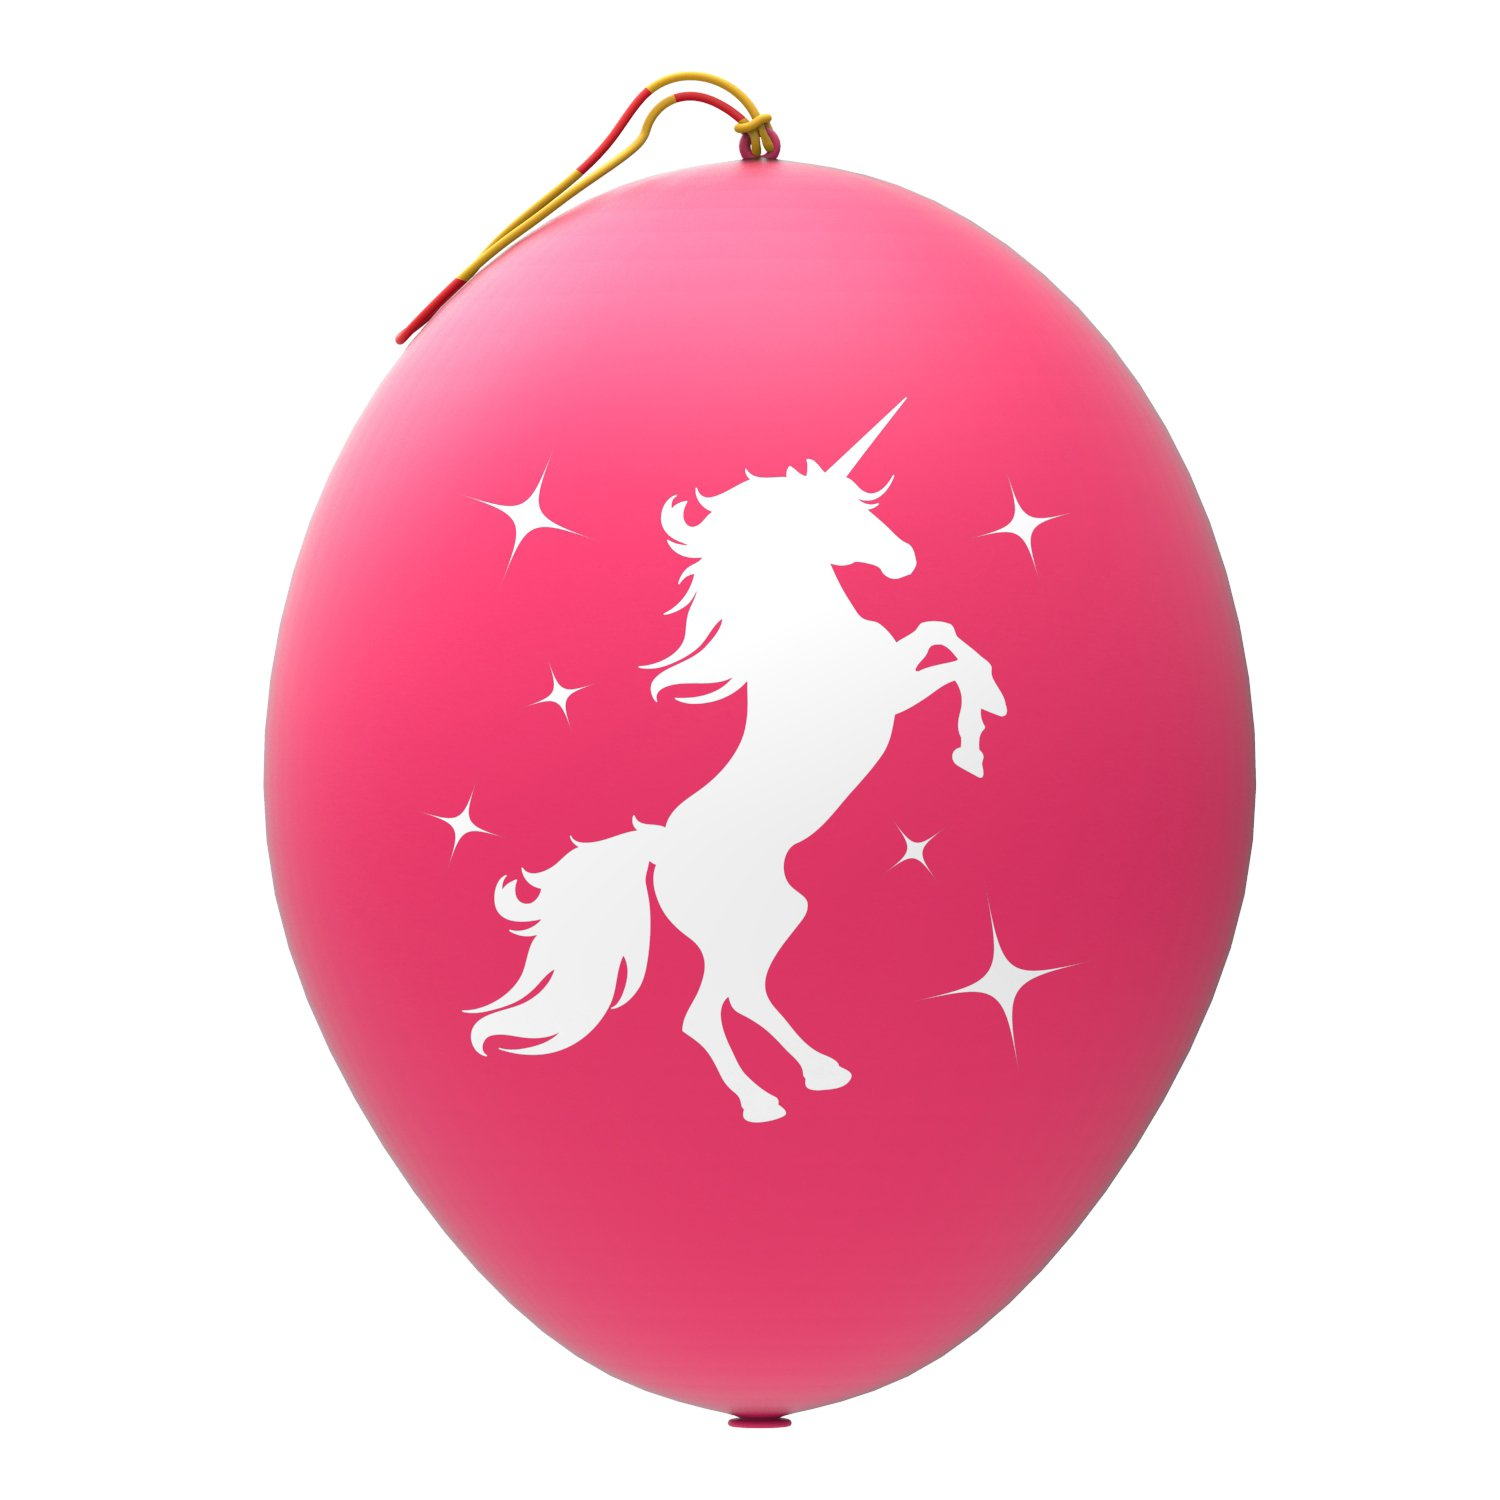 24 Pink Unicorn Punch Balloons - Best for Birthday Gift Bags, Kids Games, Princess Parties and Unicorn Party Supplies - Extra Large, Eco Friendly Natural Latex Punch Balls for Girls - By John & Judy by John & Judy